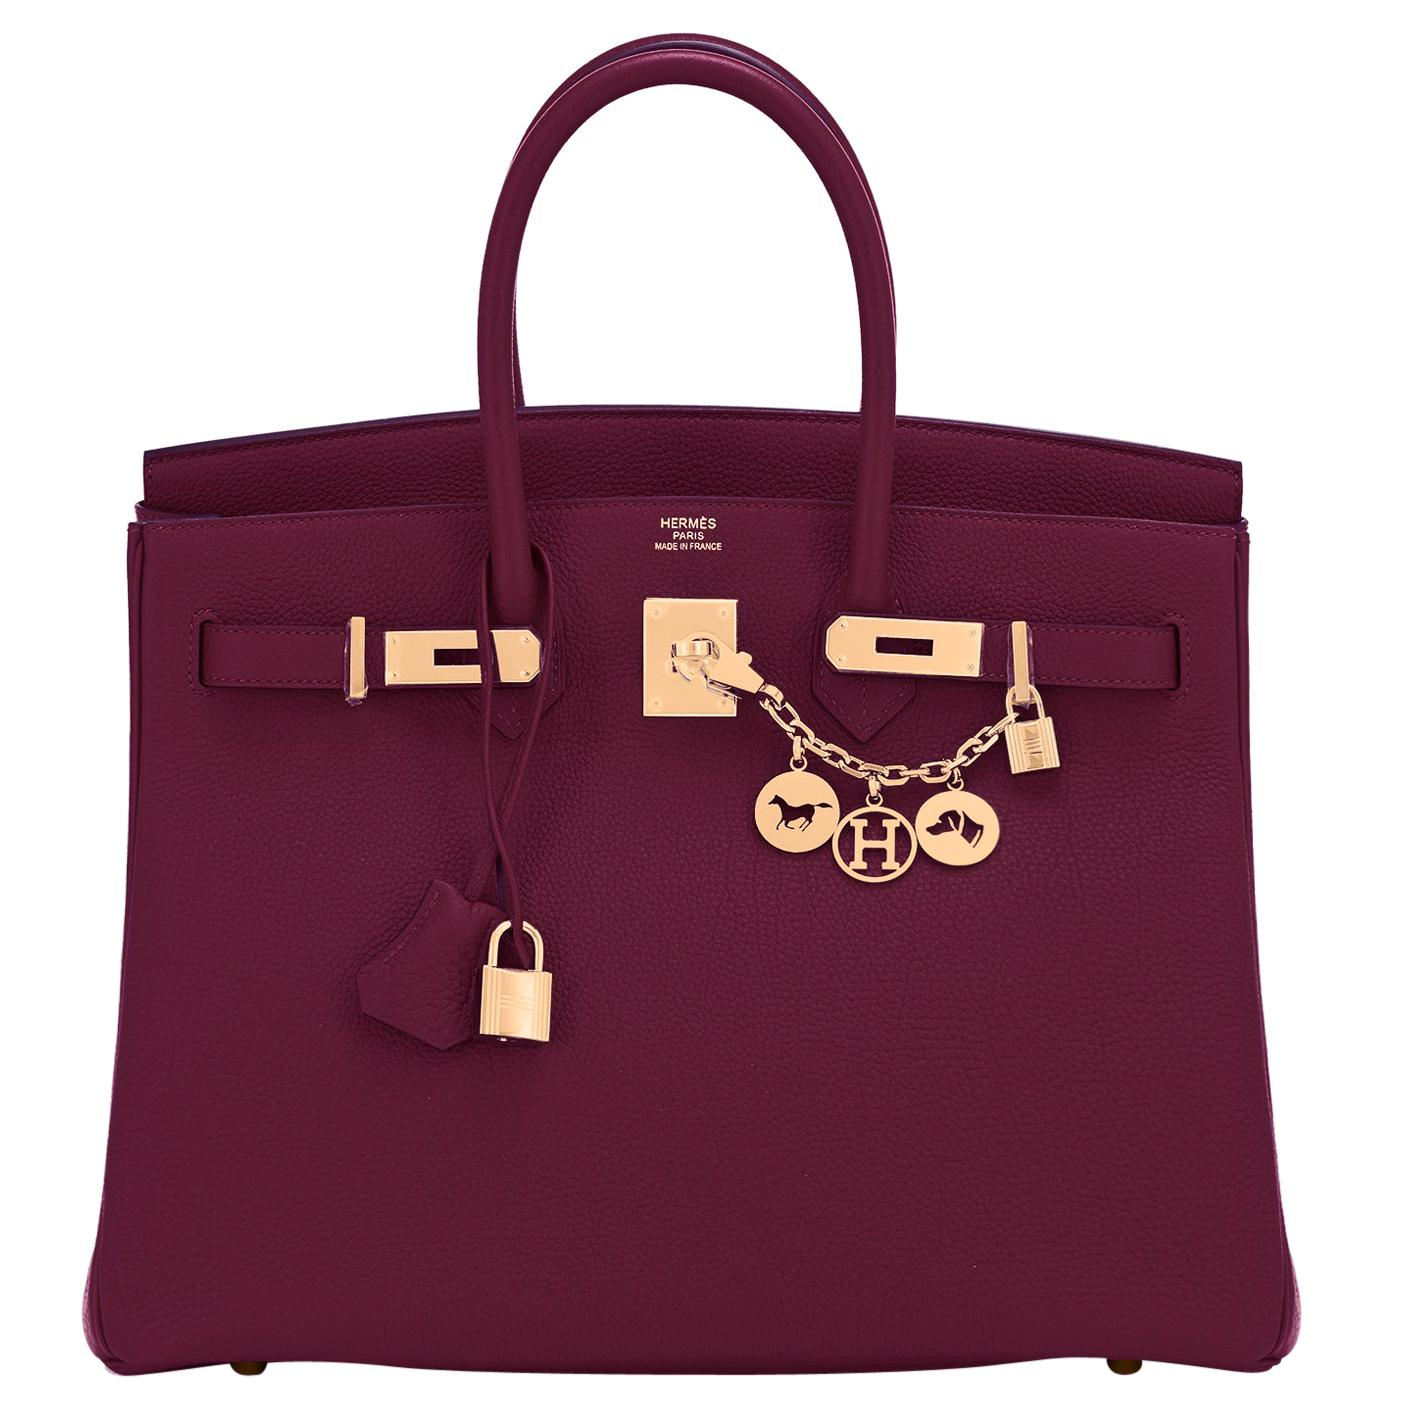 Hermes Birkin 35cm Rouge H Togo Deep Bordeaux Red Gold Birkin Bag Y Stamp, 2020